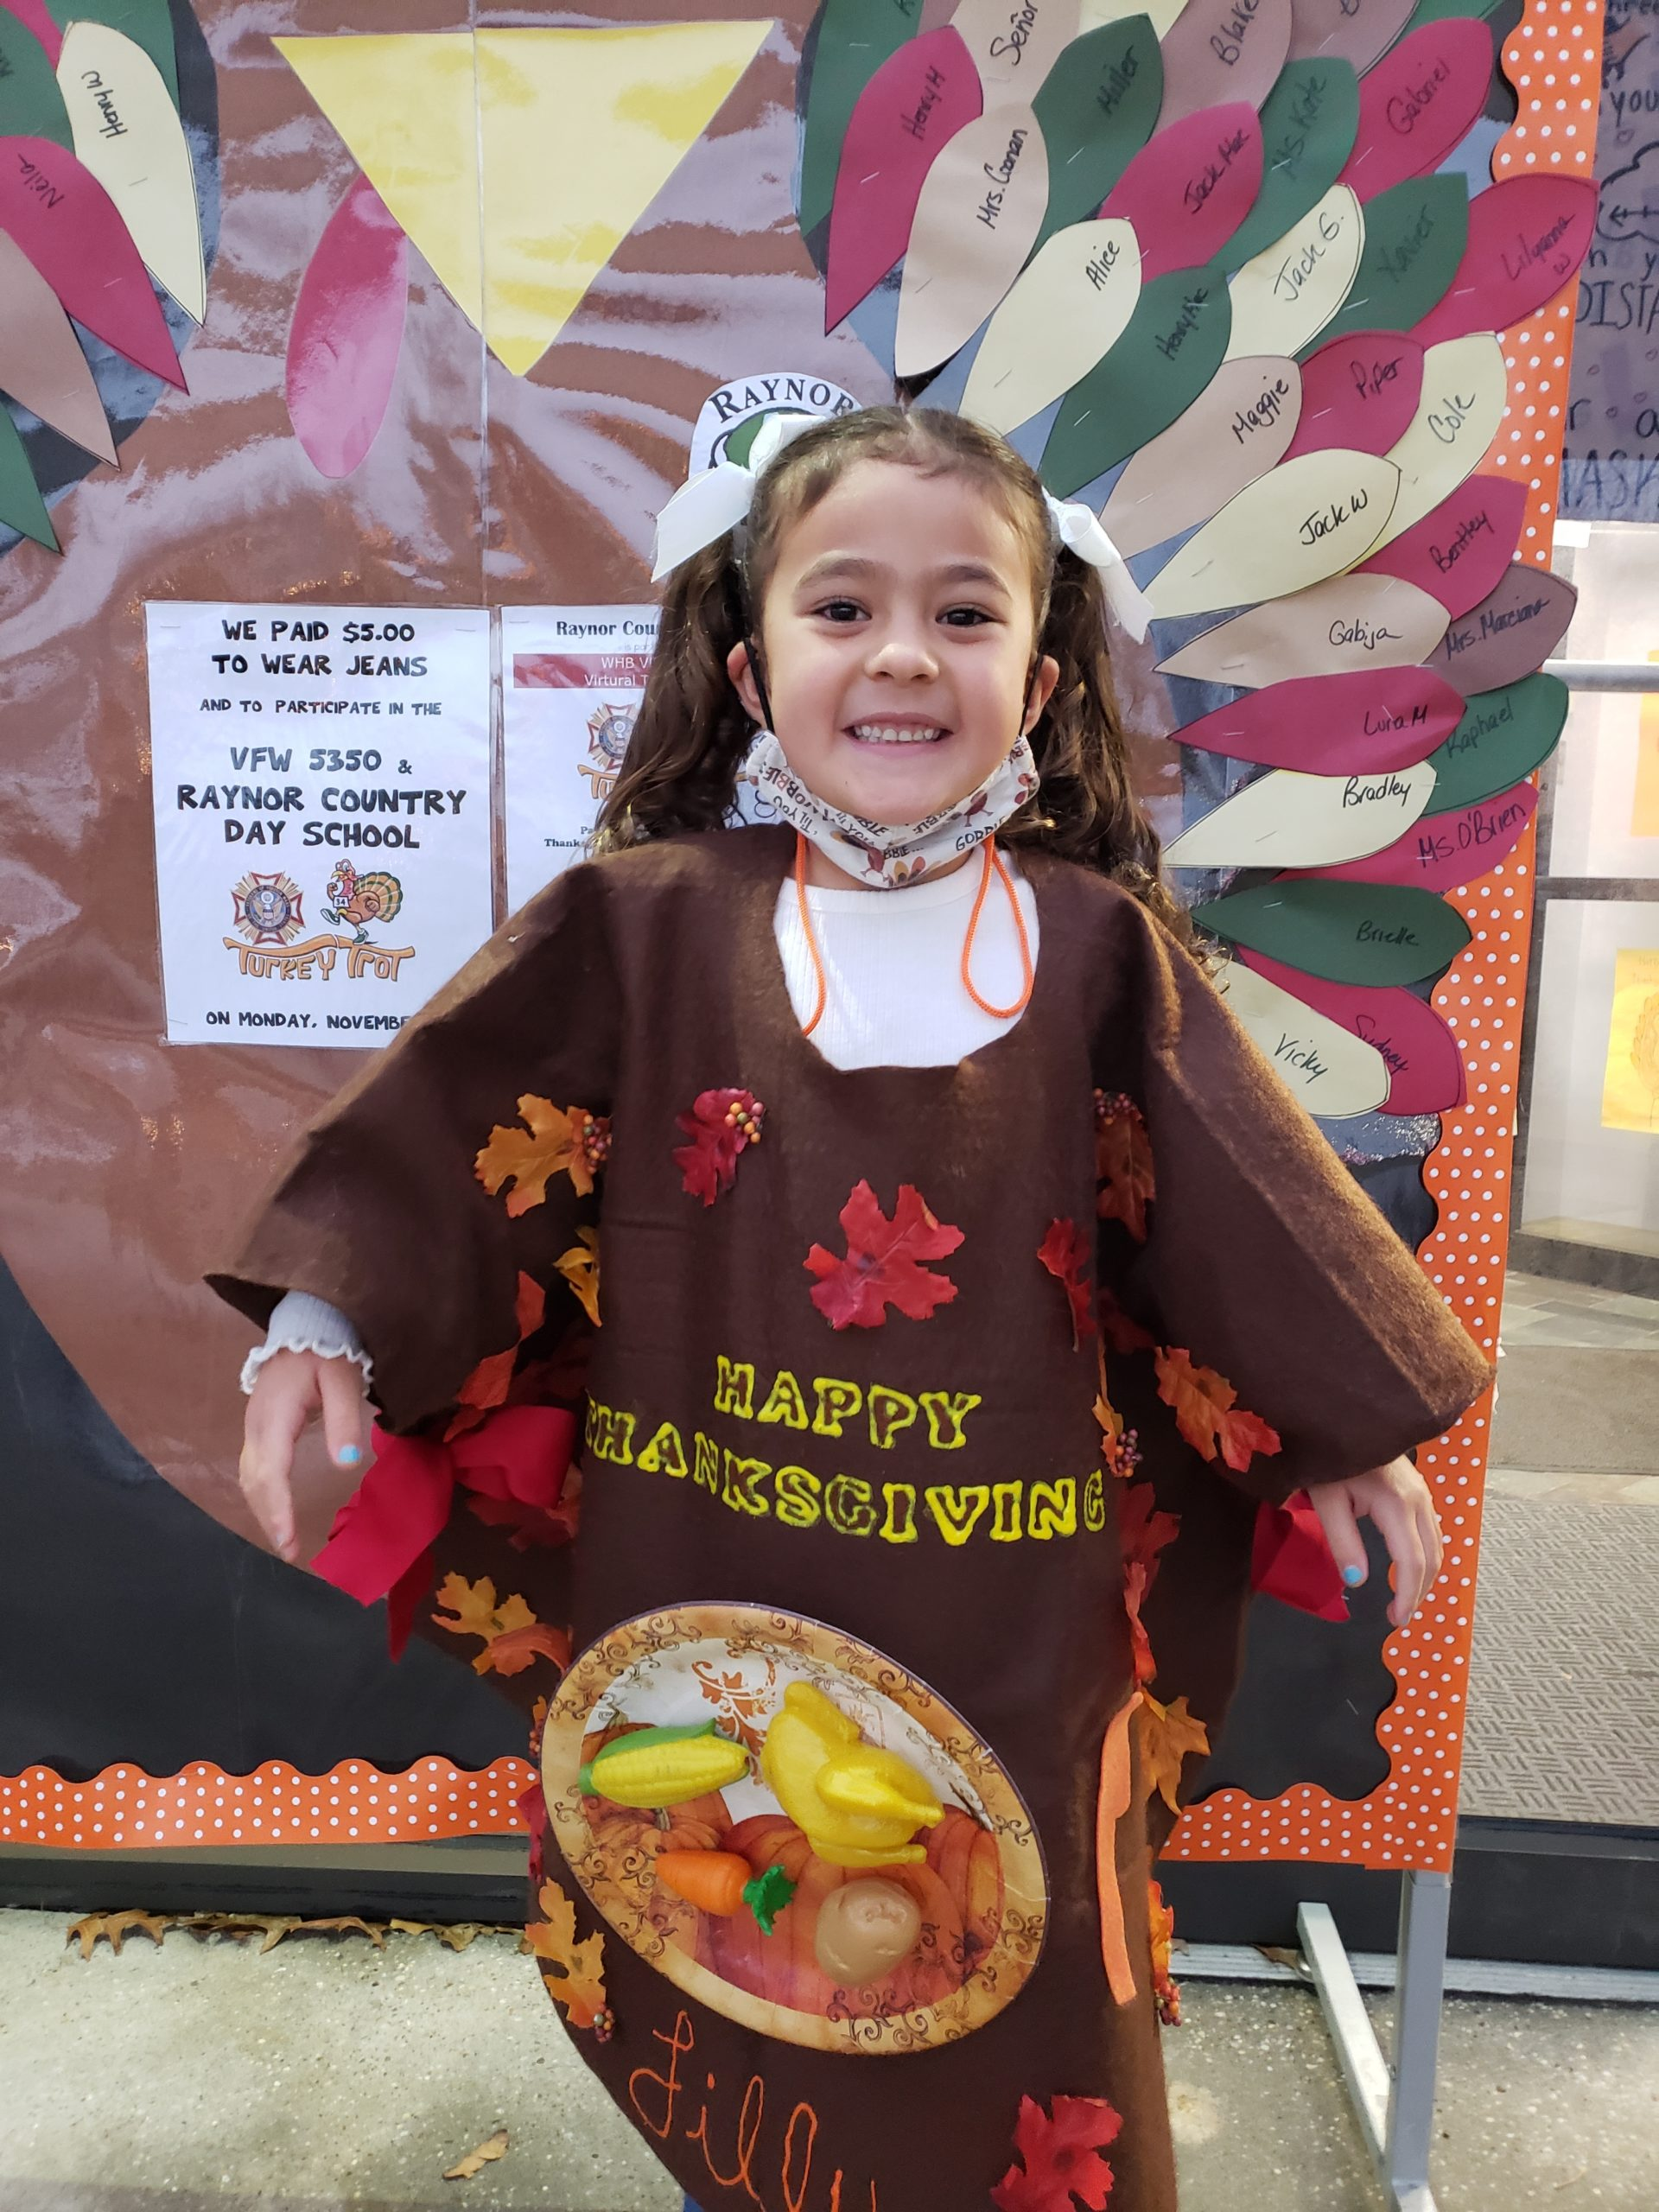 Kindergarten student, Lily Benjamin, takes a moment to pose before heading into the Raynor Country Day School VFW Turkey Trot.